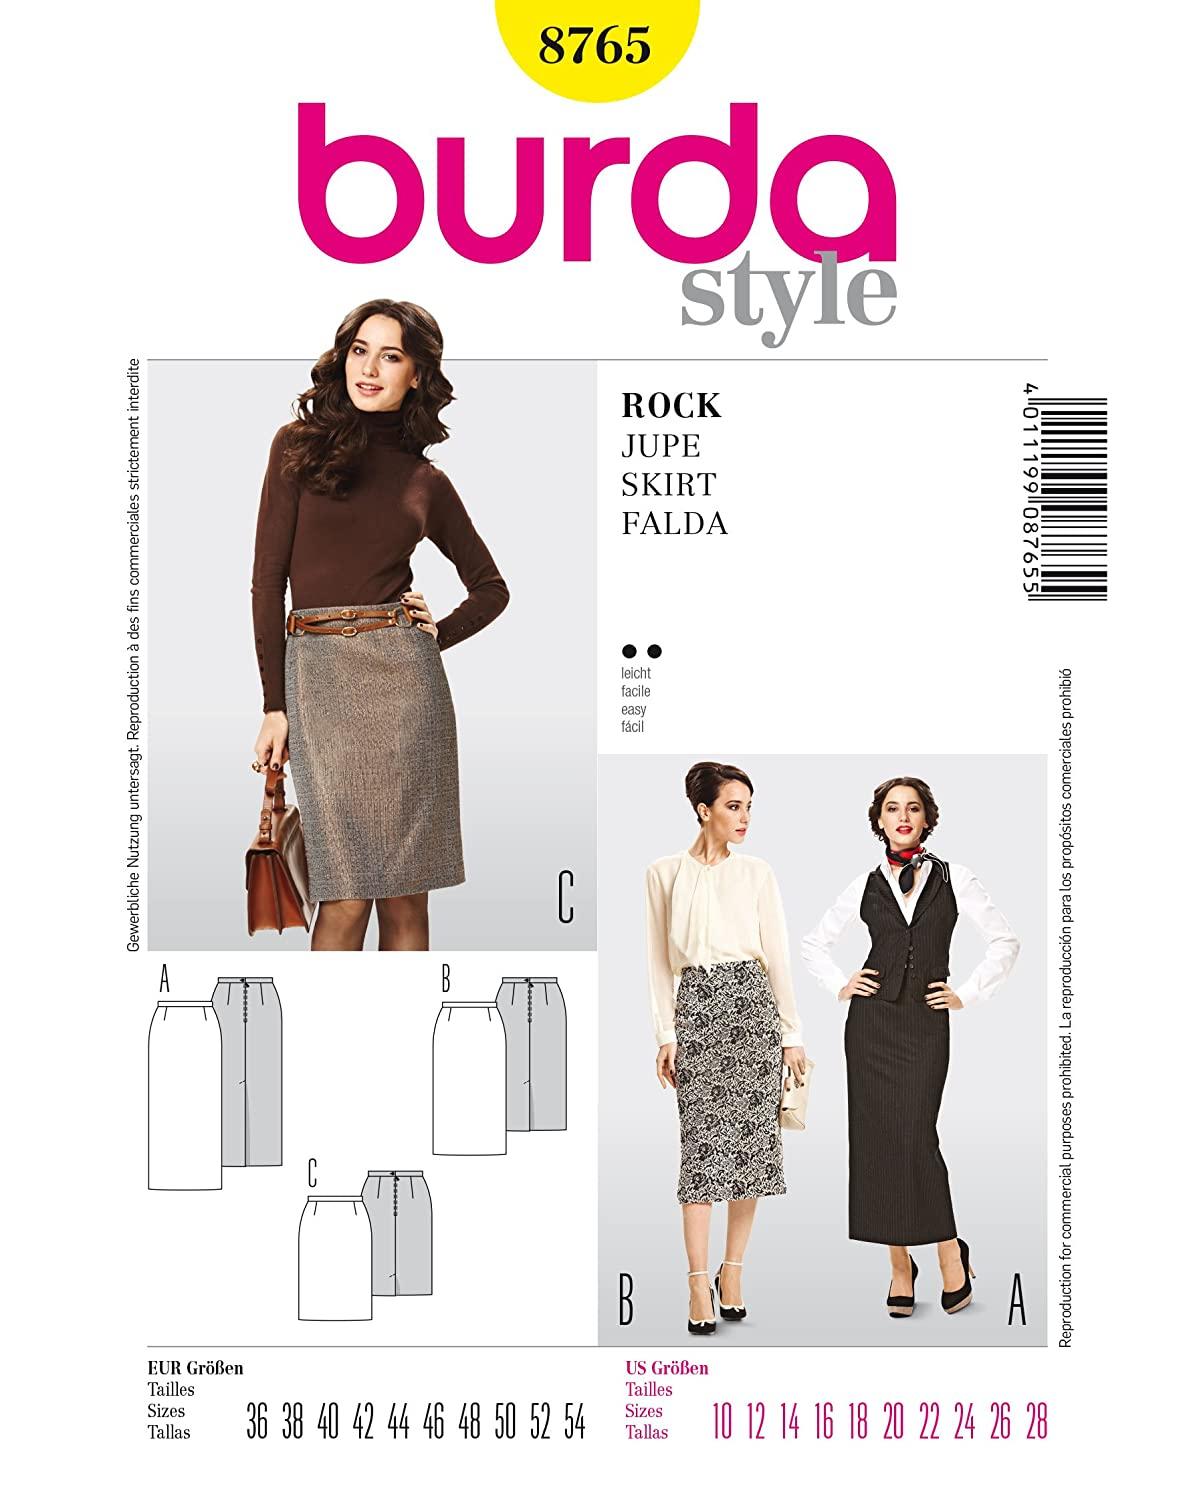 Burda B8765 Skirt Sewing Pattern 19 x 13 cm